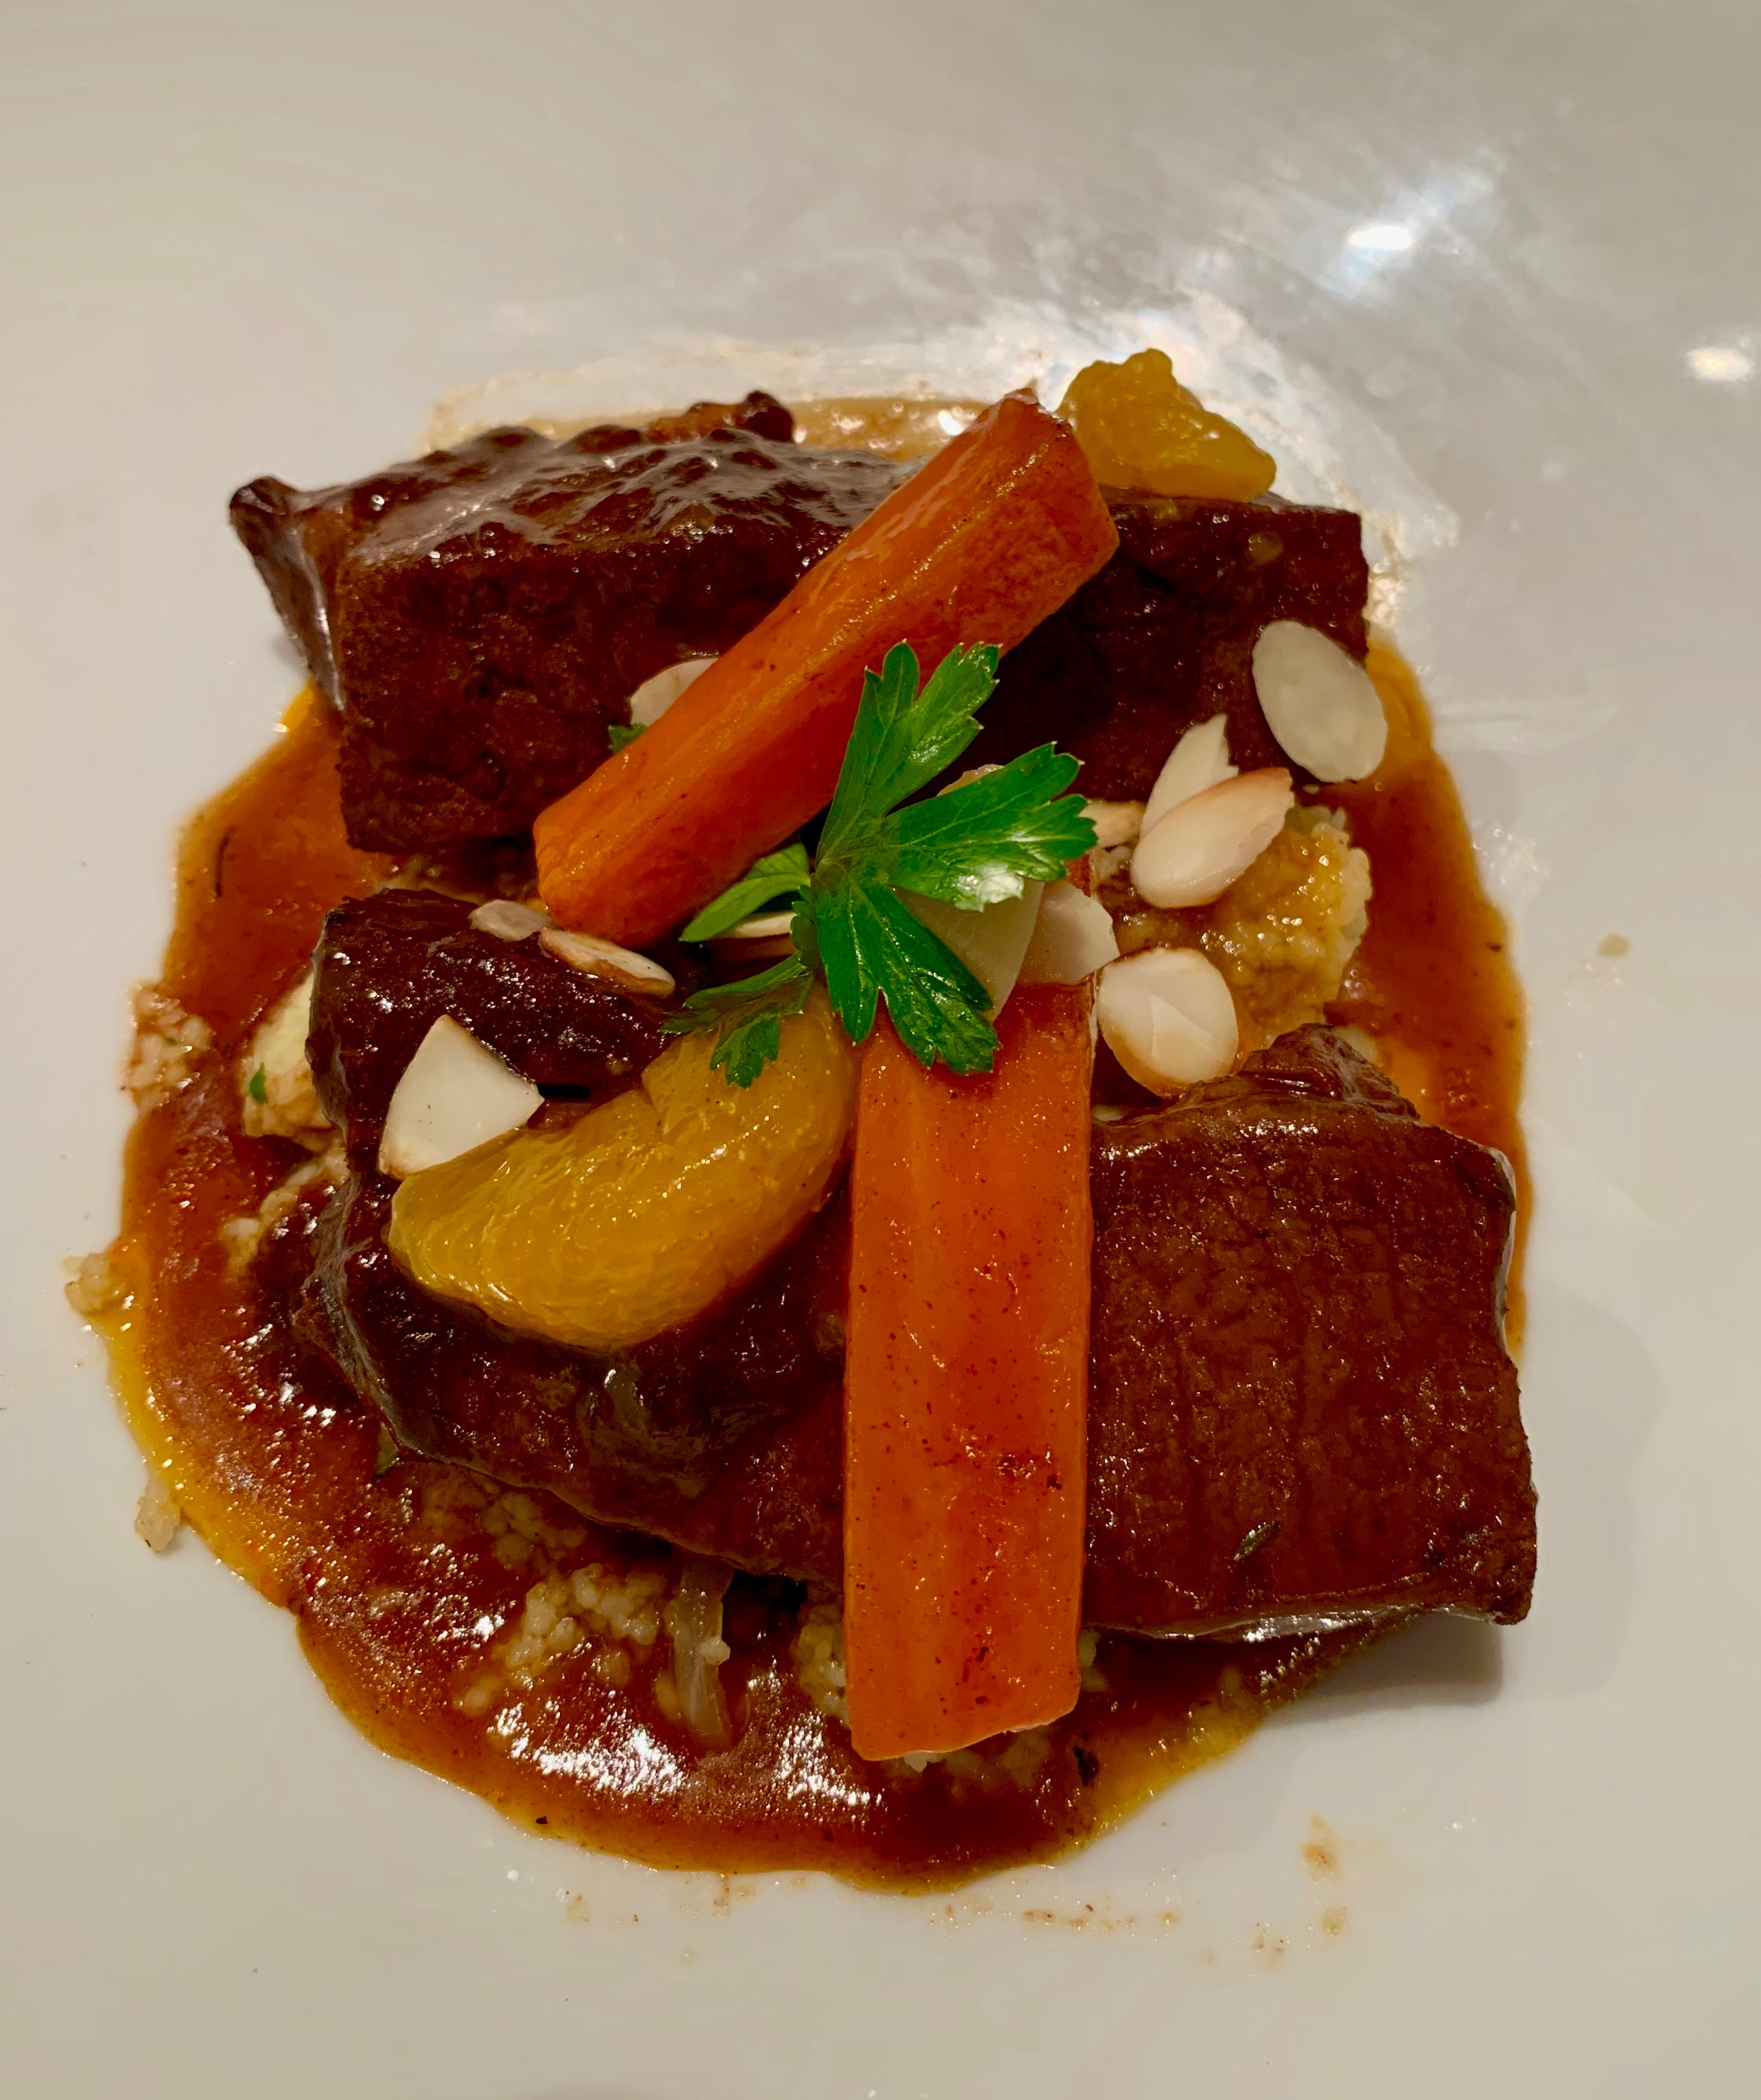 Delicious beef tagine lunch dish